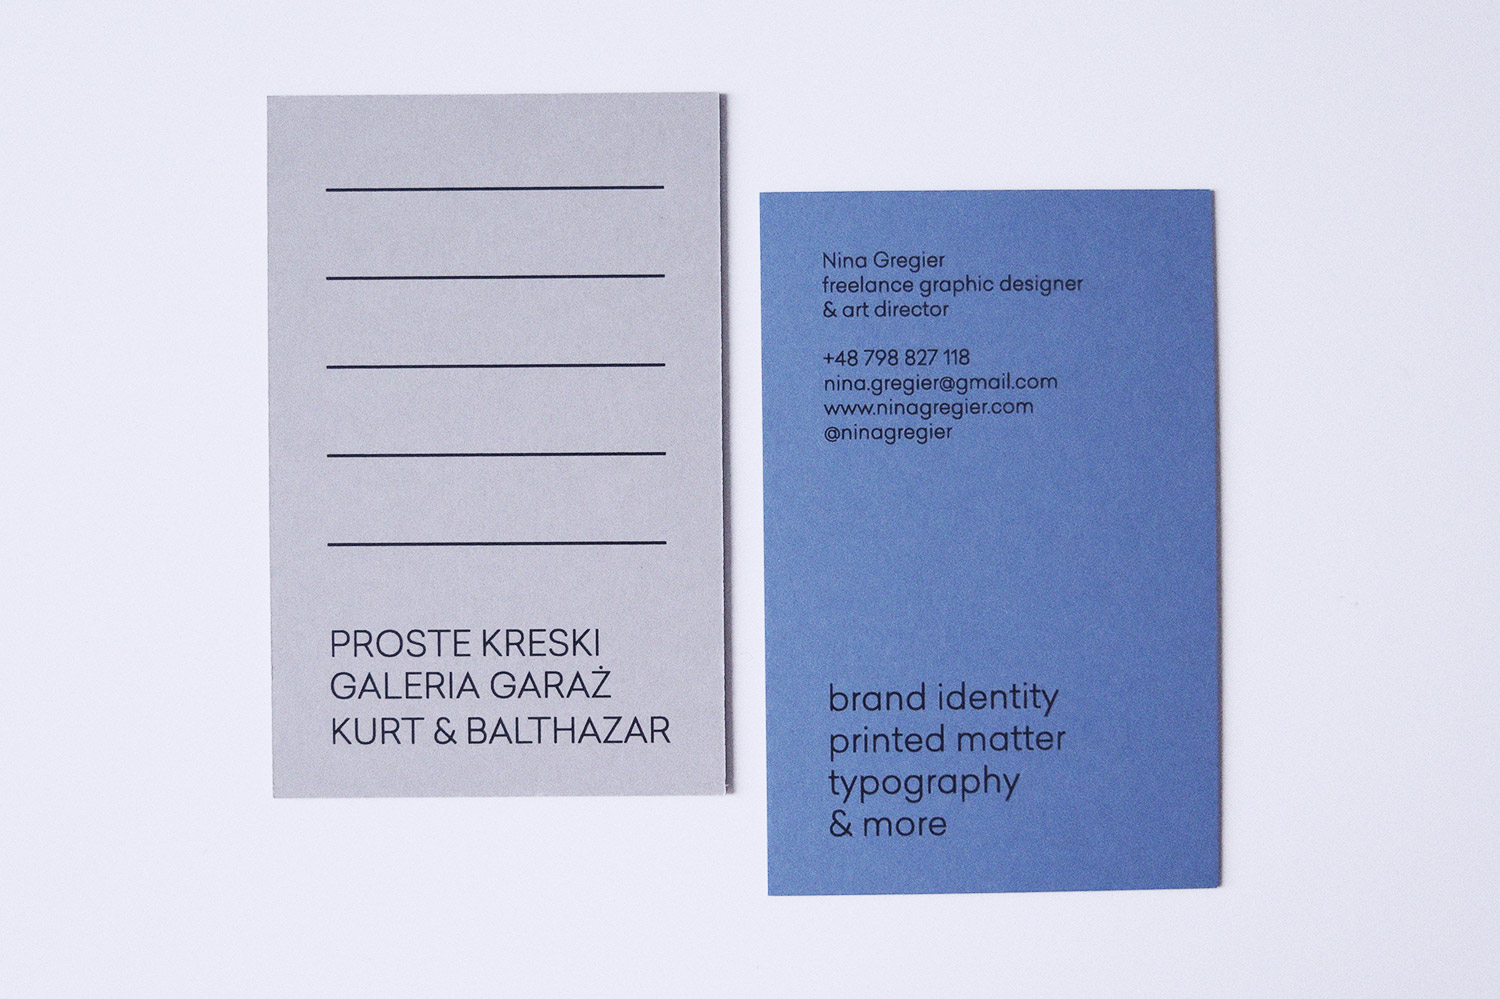 business cards nina gregier (3)